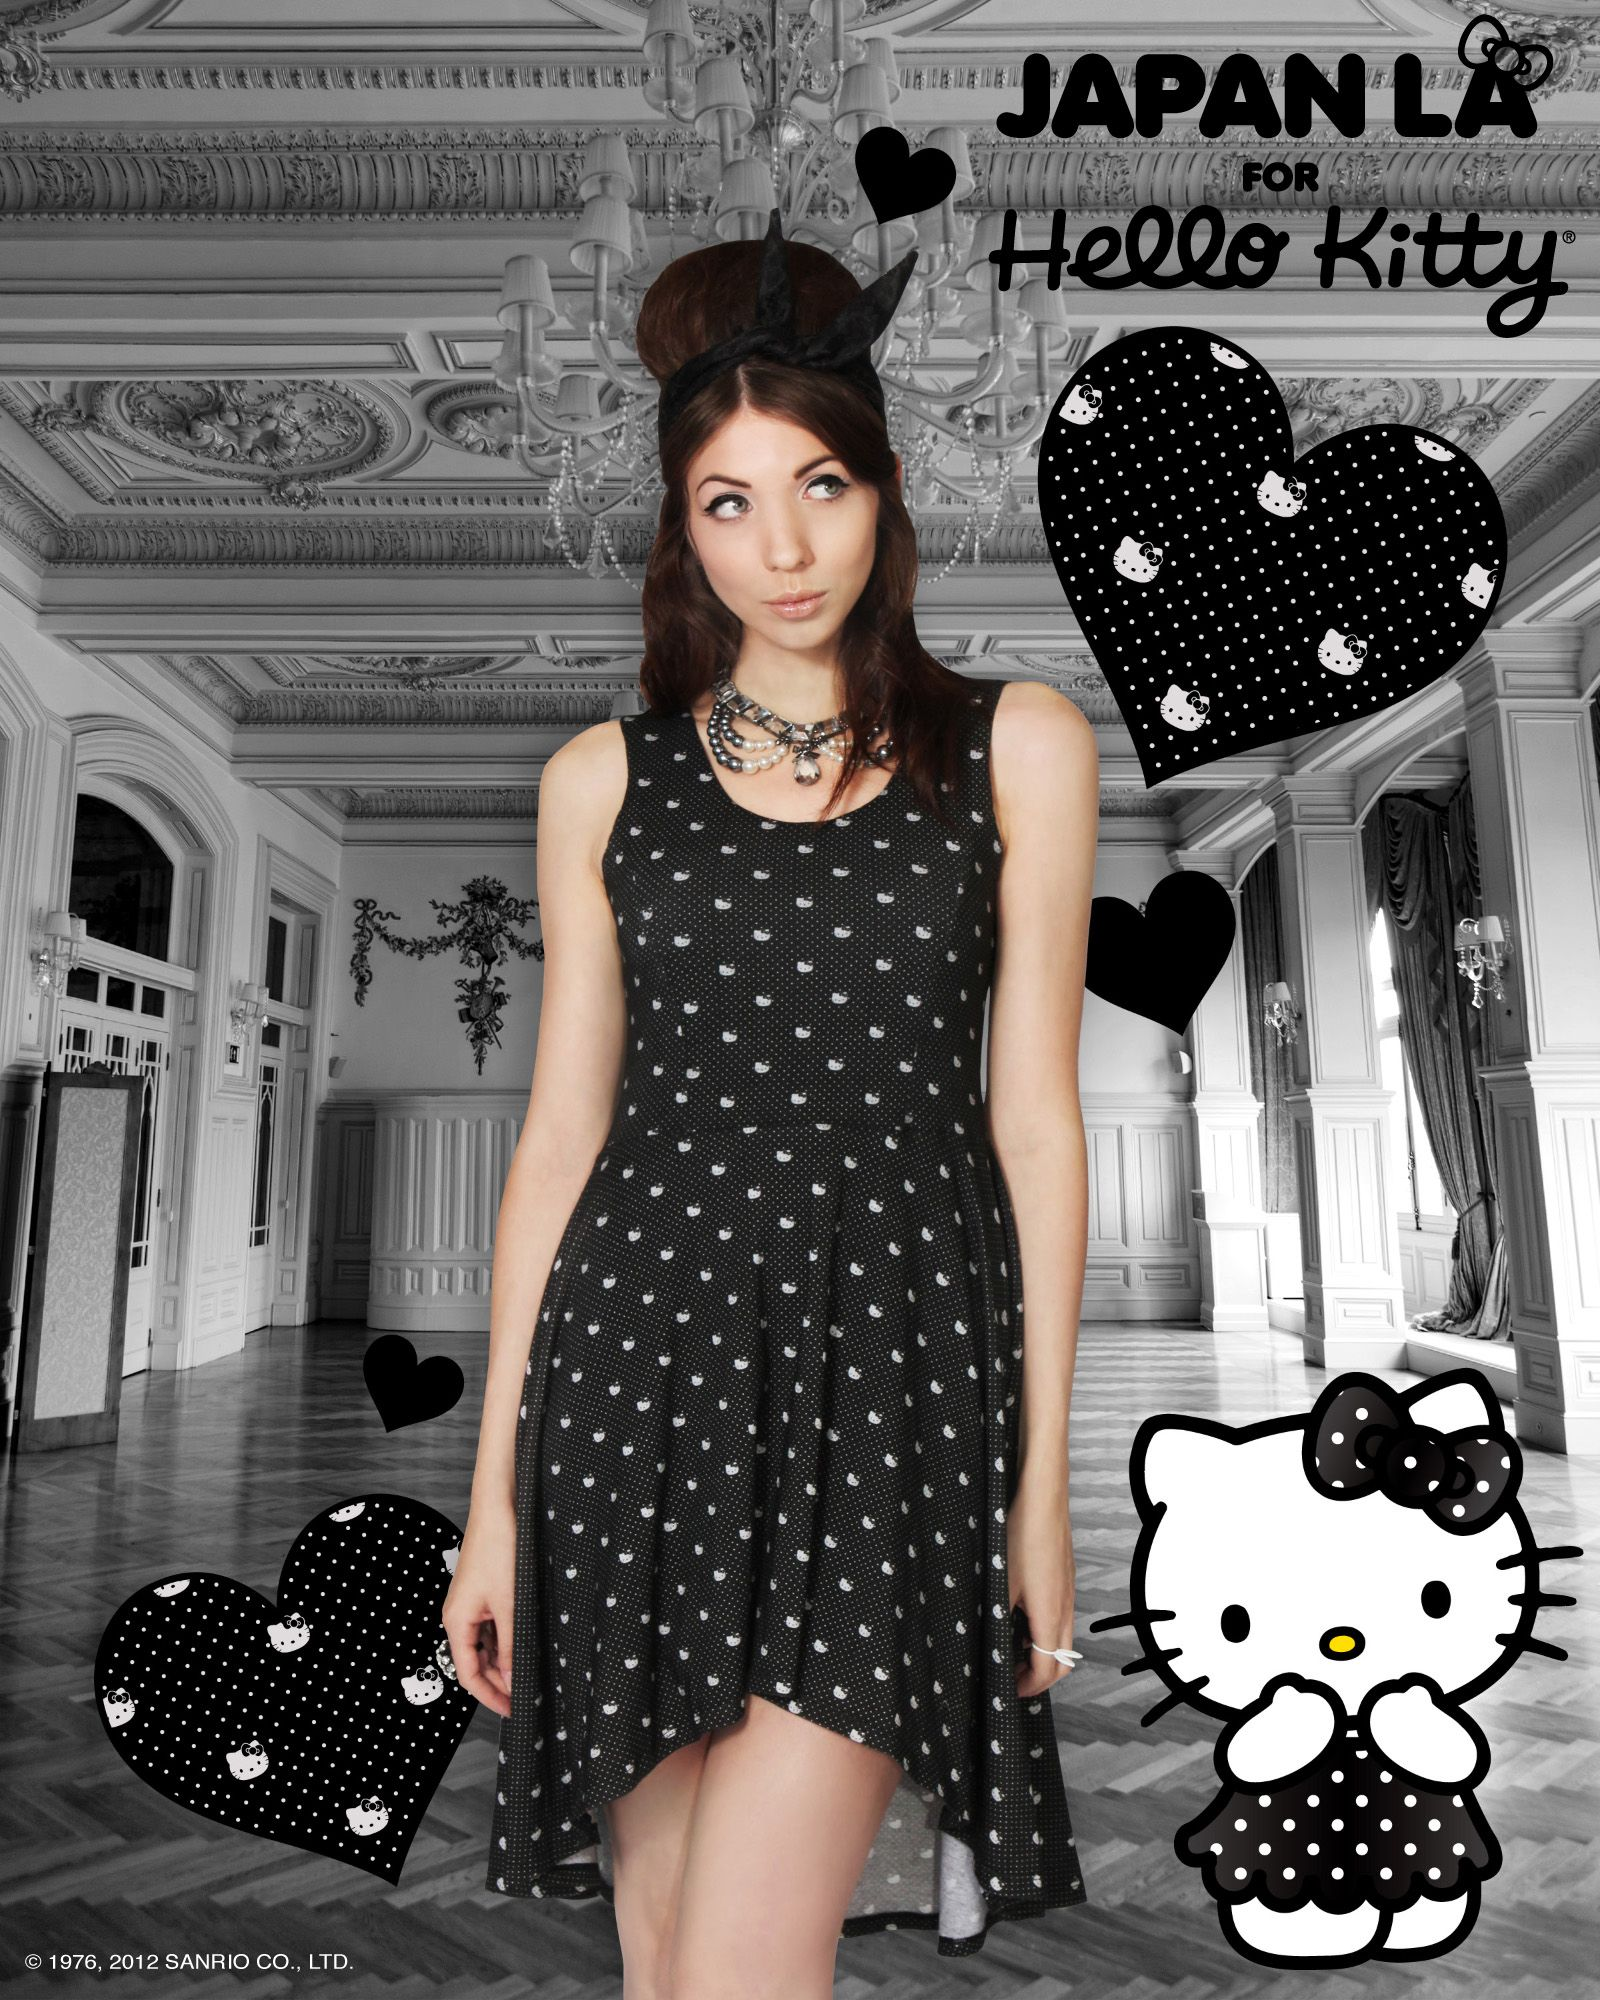 a4aaecc9f Pin by JapanLA Clothing on JapanLA x Hello Kitty Collection 1 ...